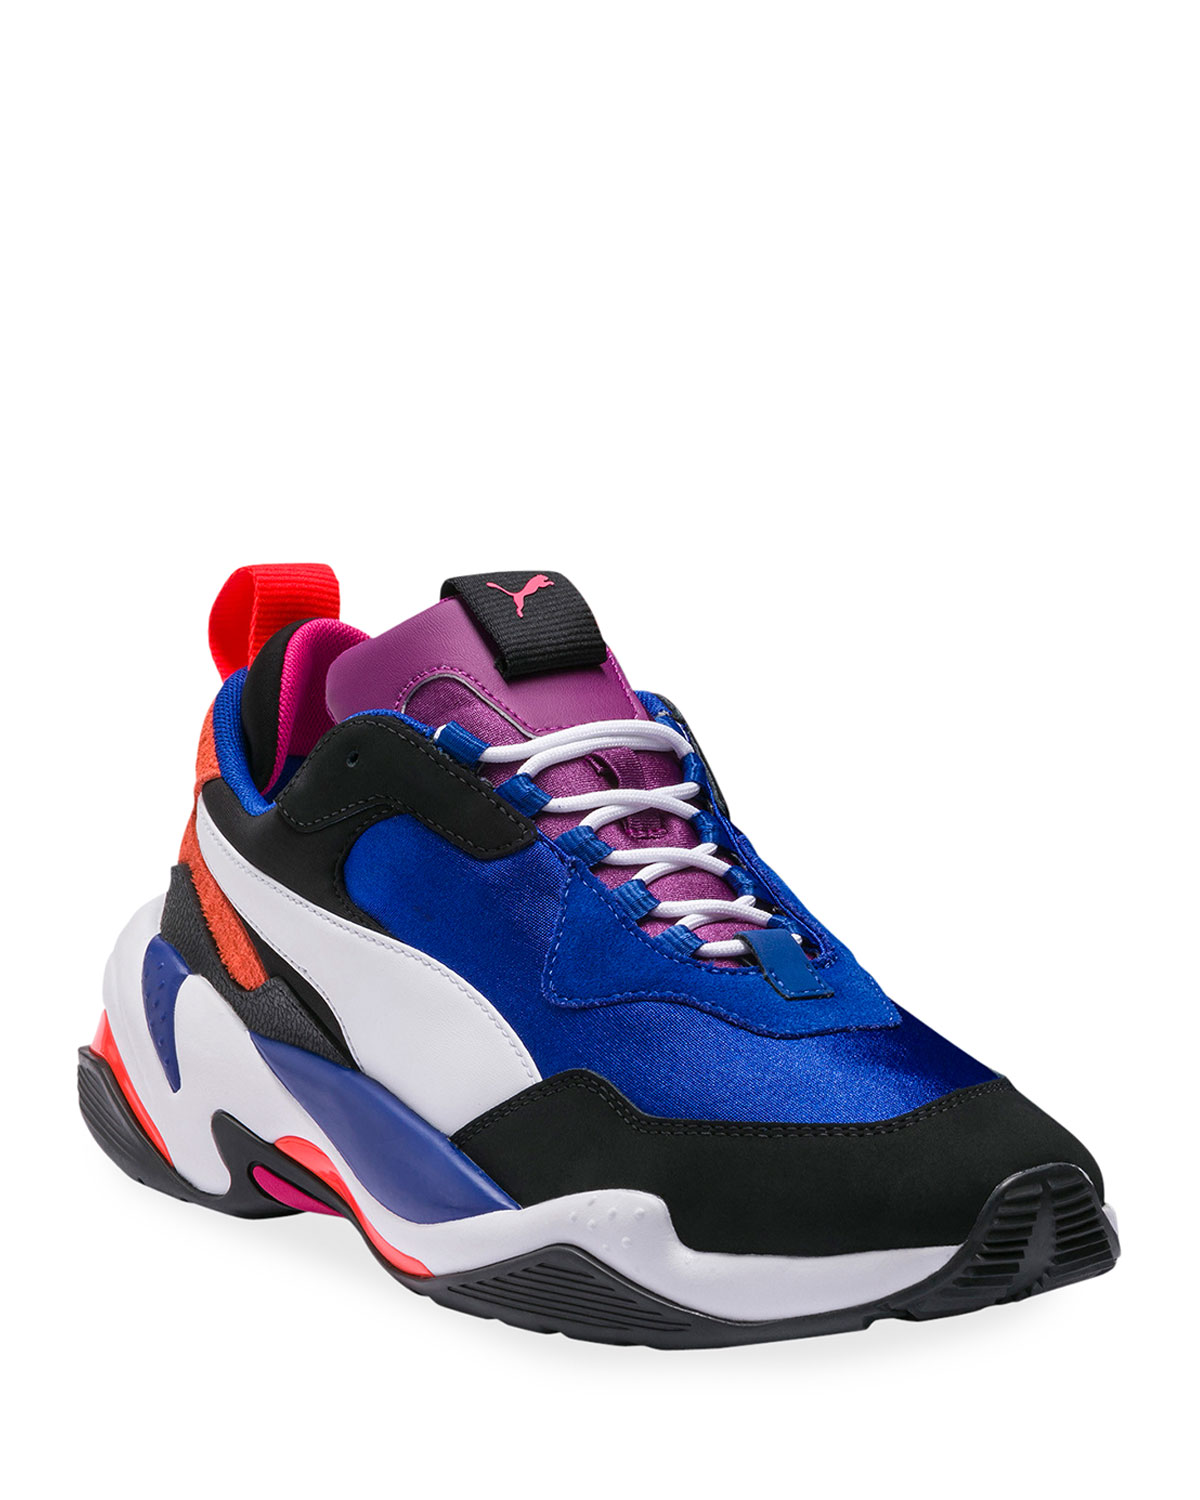 Men's Thunder 4 Life Leather Trainer Sneakers